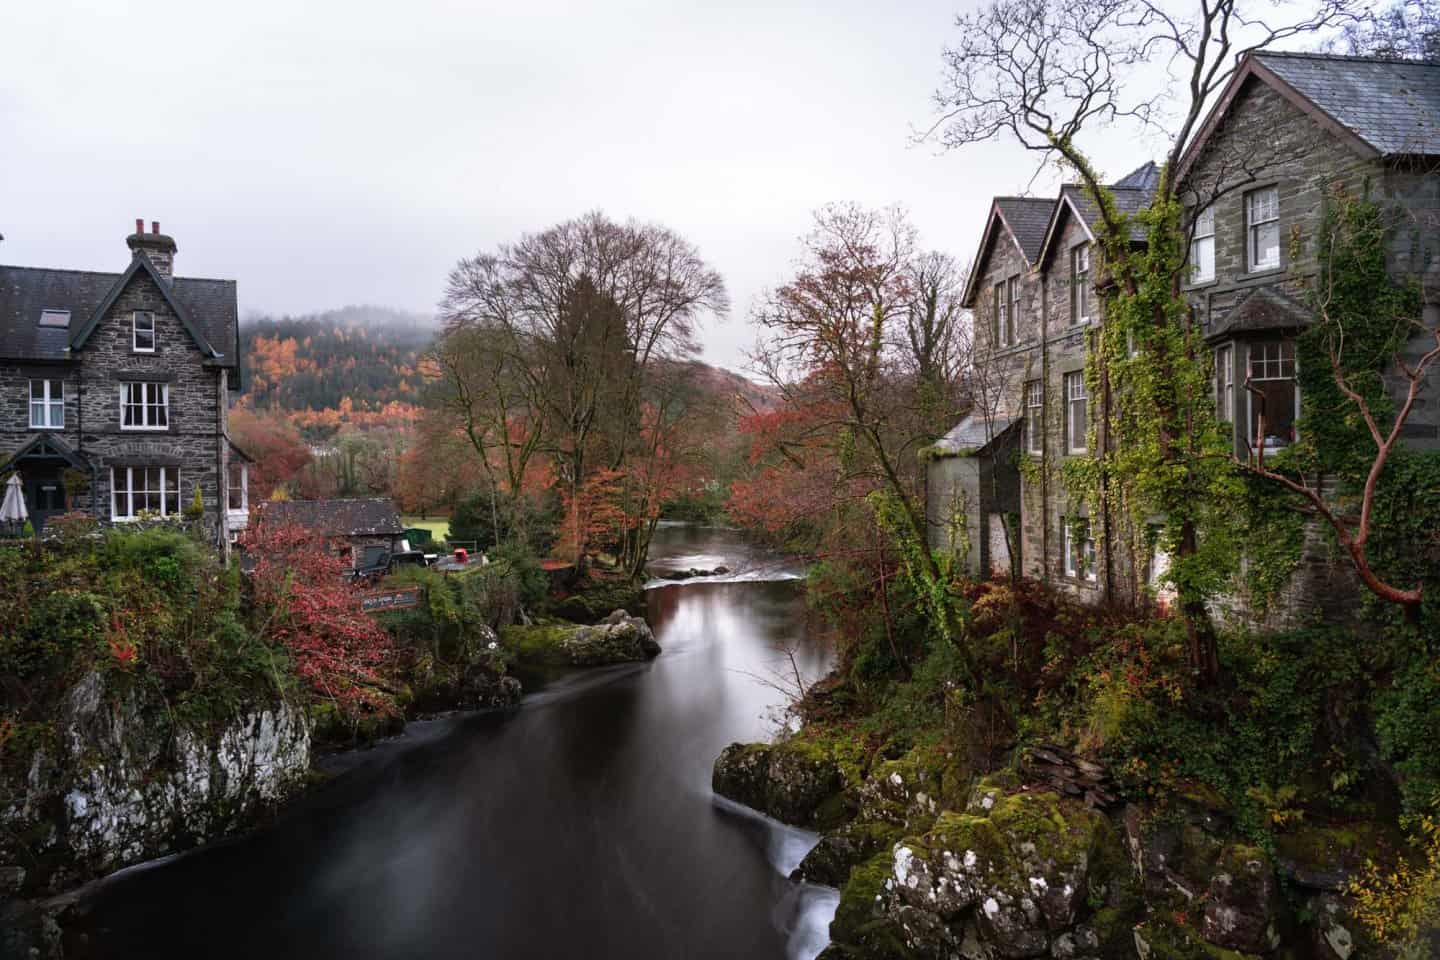 The best Snowdonia photography location for photographing Welsh village life is here at Betws-y-Coed.